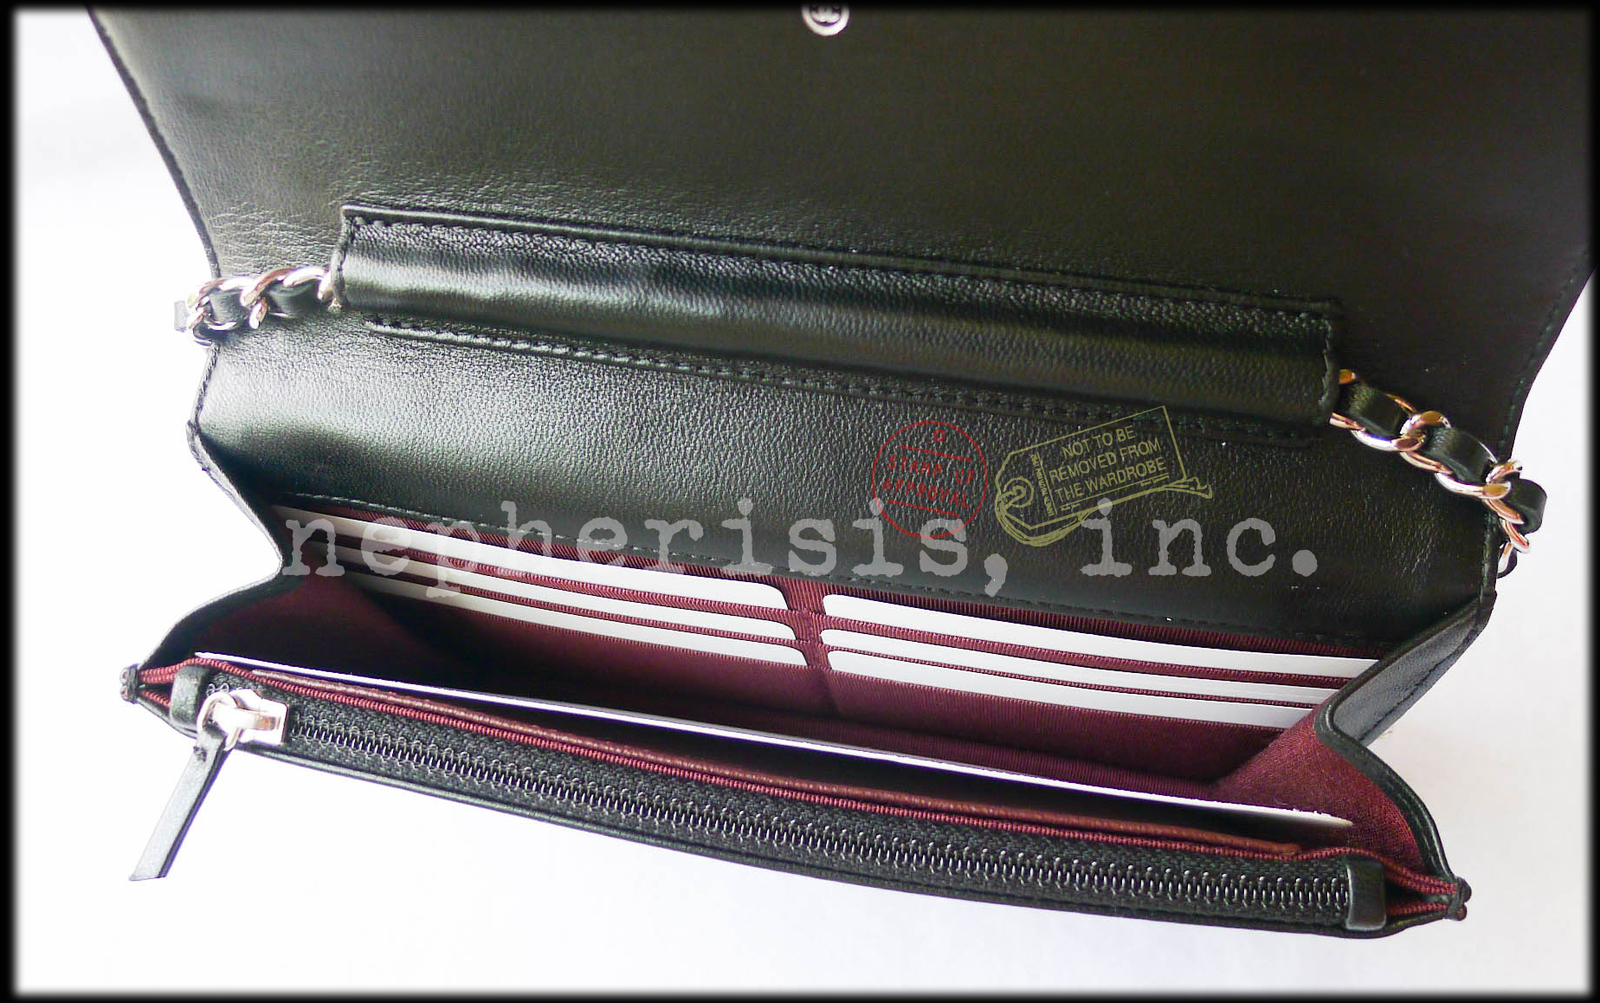 94c77a14557db2 BNIB Chanel Classic Quilted WALLET ON CHAIN or WOC Black Lambskin with  Silver HW